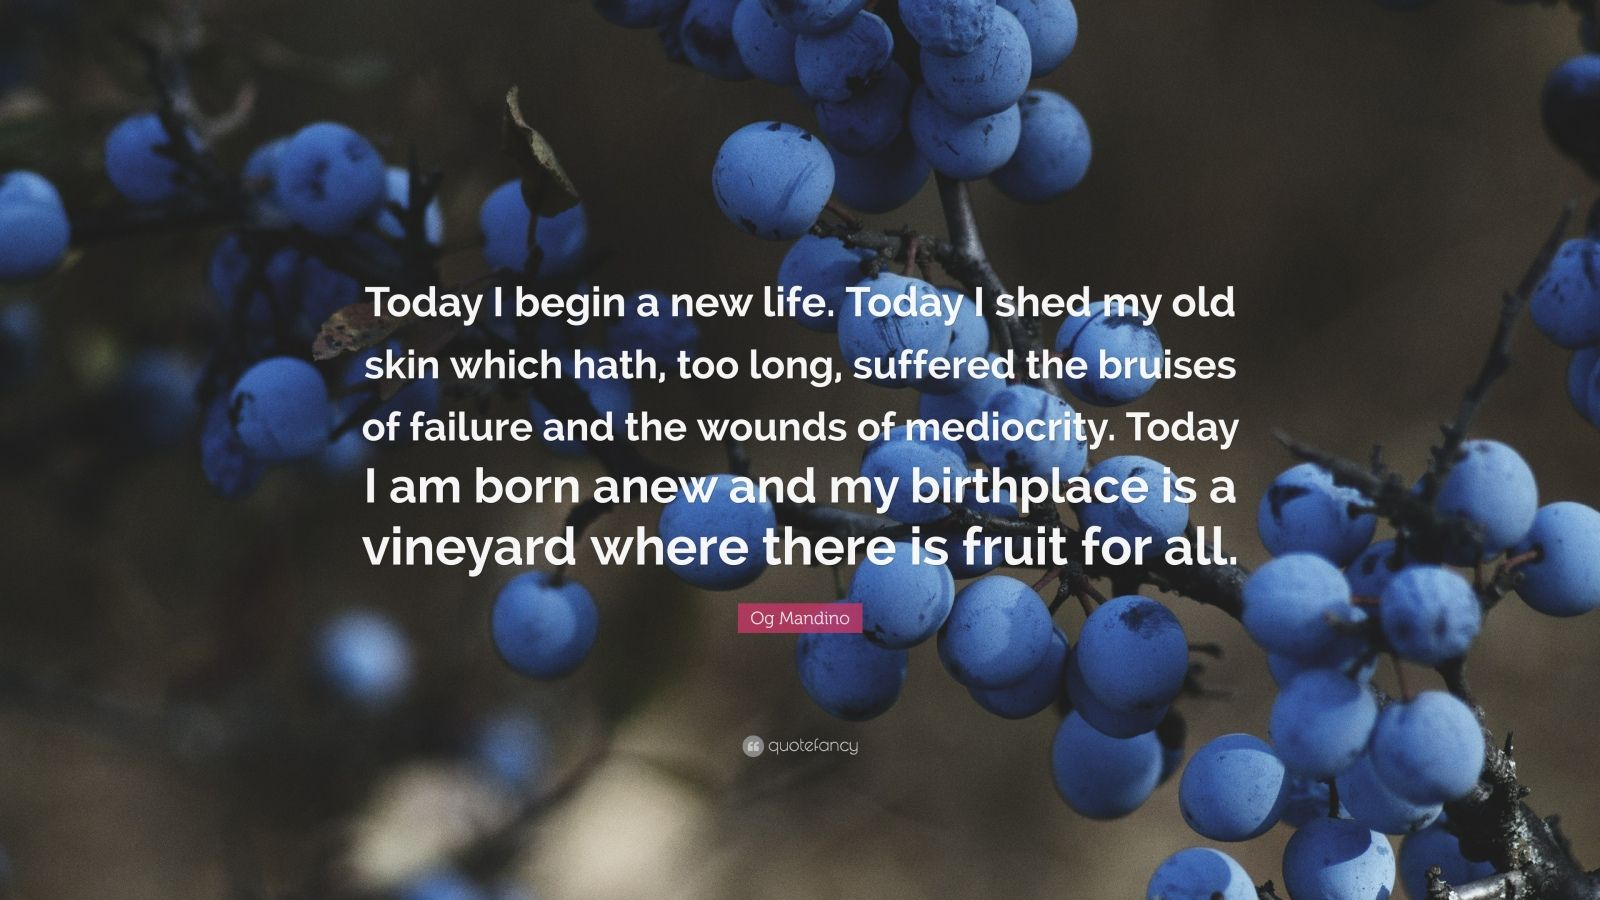 """Og Mandino Quote: """"Today I begin a new life. Today I shed my old skin which hath, too long, suffered the bruises of failure and the wounds of mediocrity. Today I am born anew and my birthplace is a vineyard where there is fruit for all."""""""